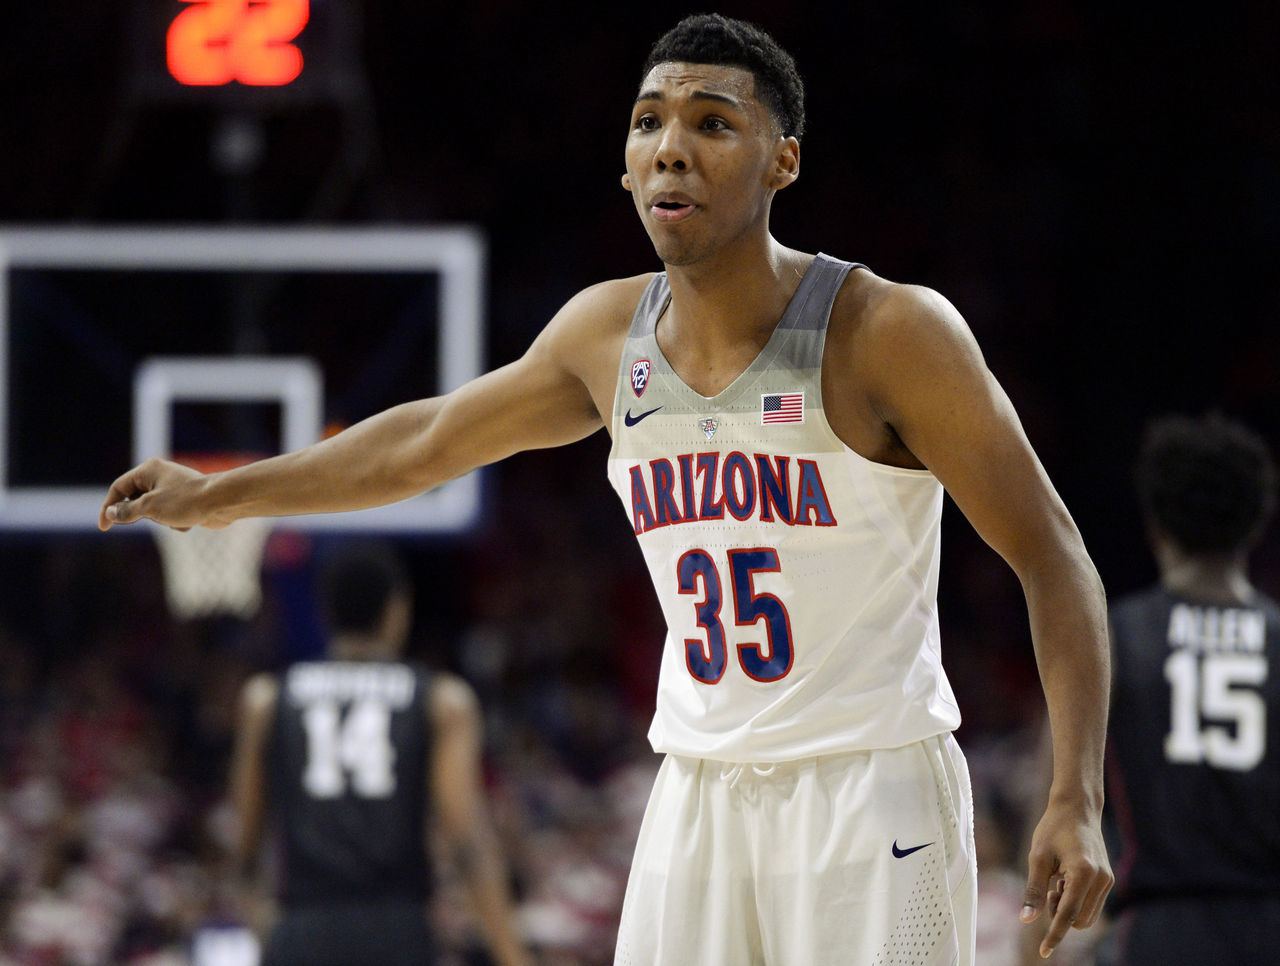 Cropped_2017-02-09t045536z_2016807701_nocid_rtrmadp_3_ncaa-basketball-stanford-at-arizona